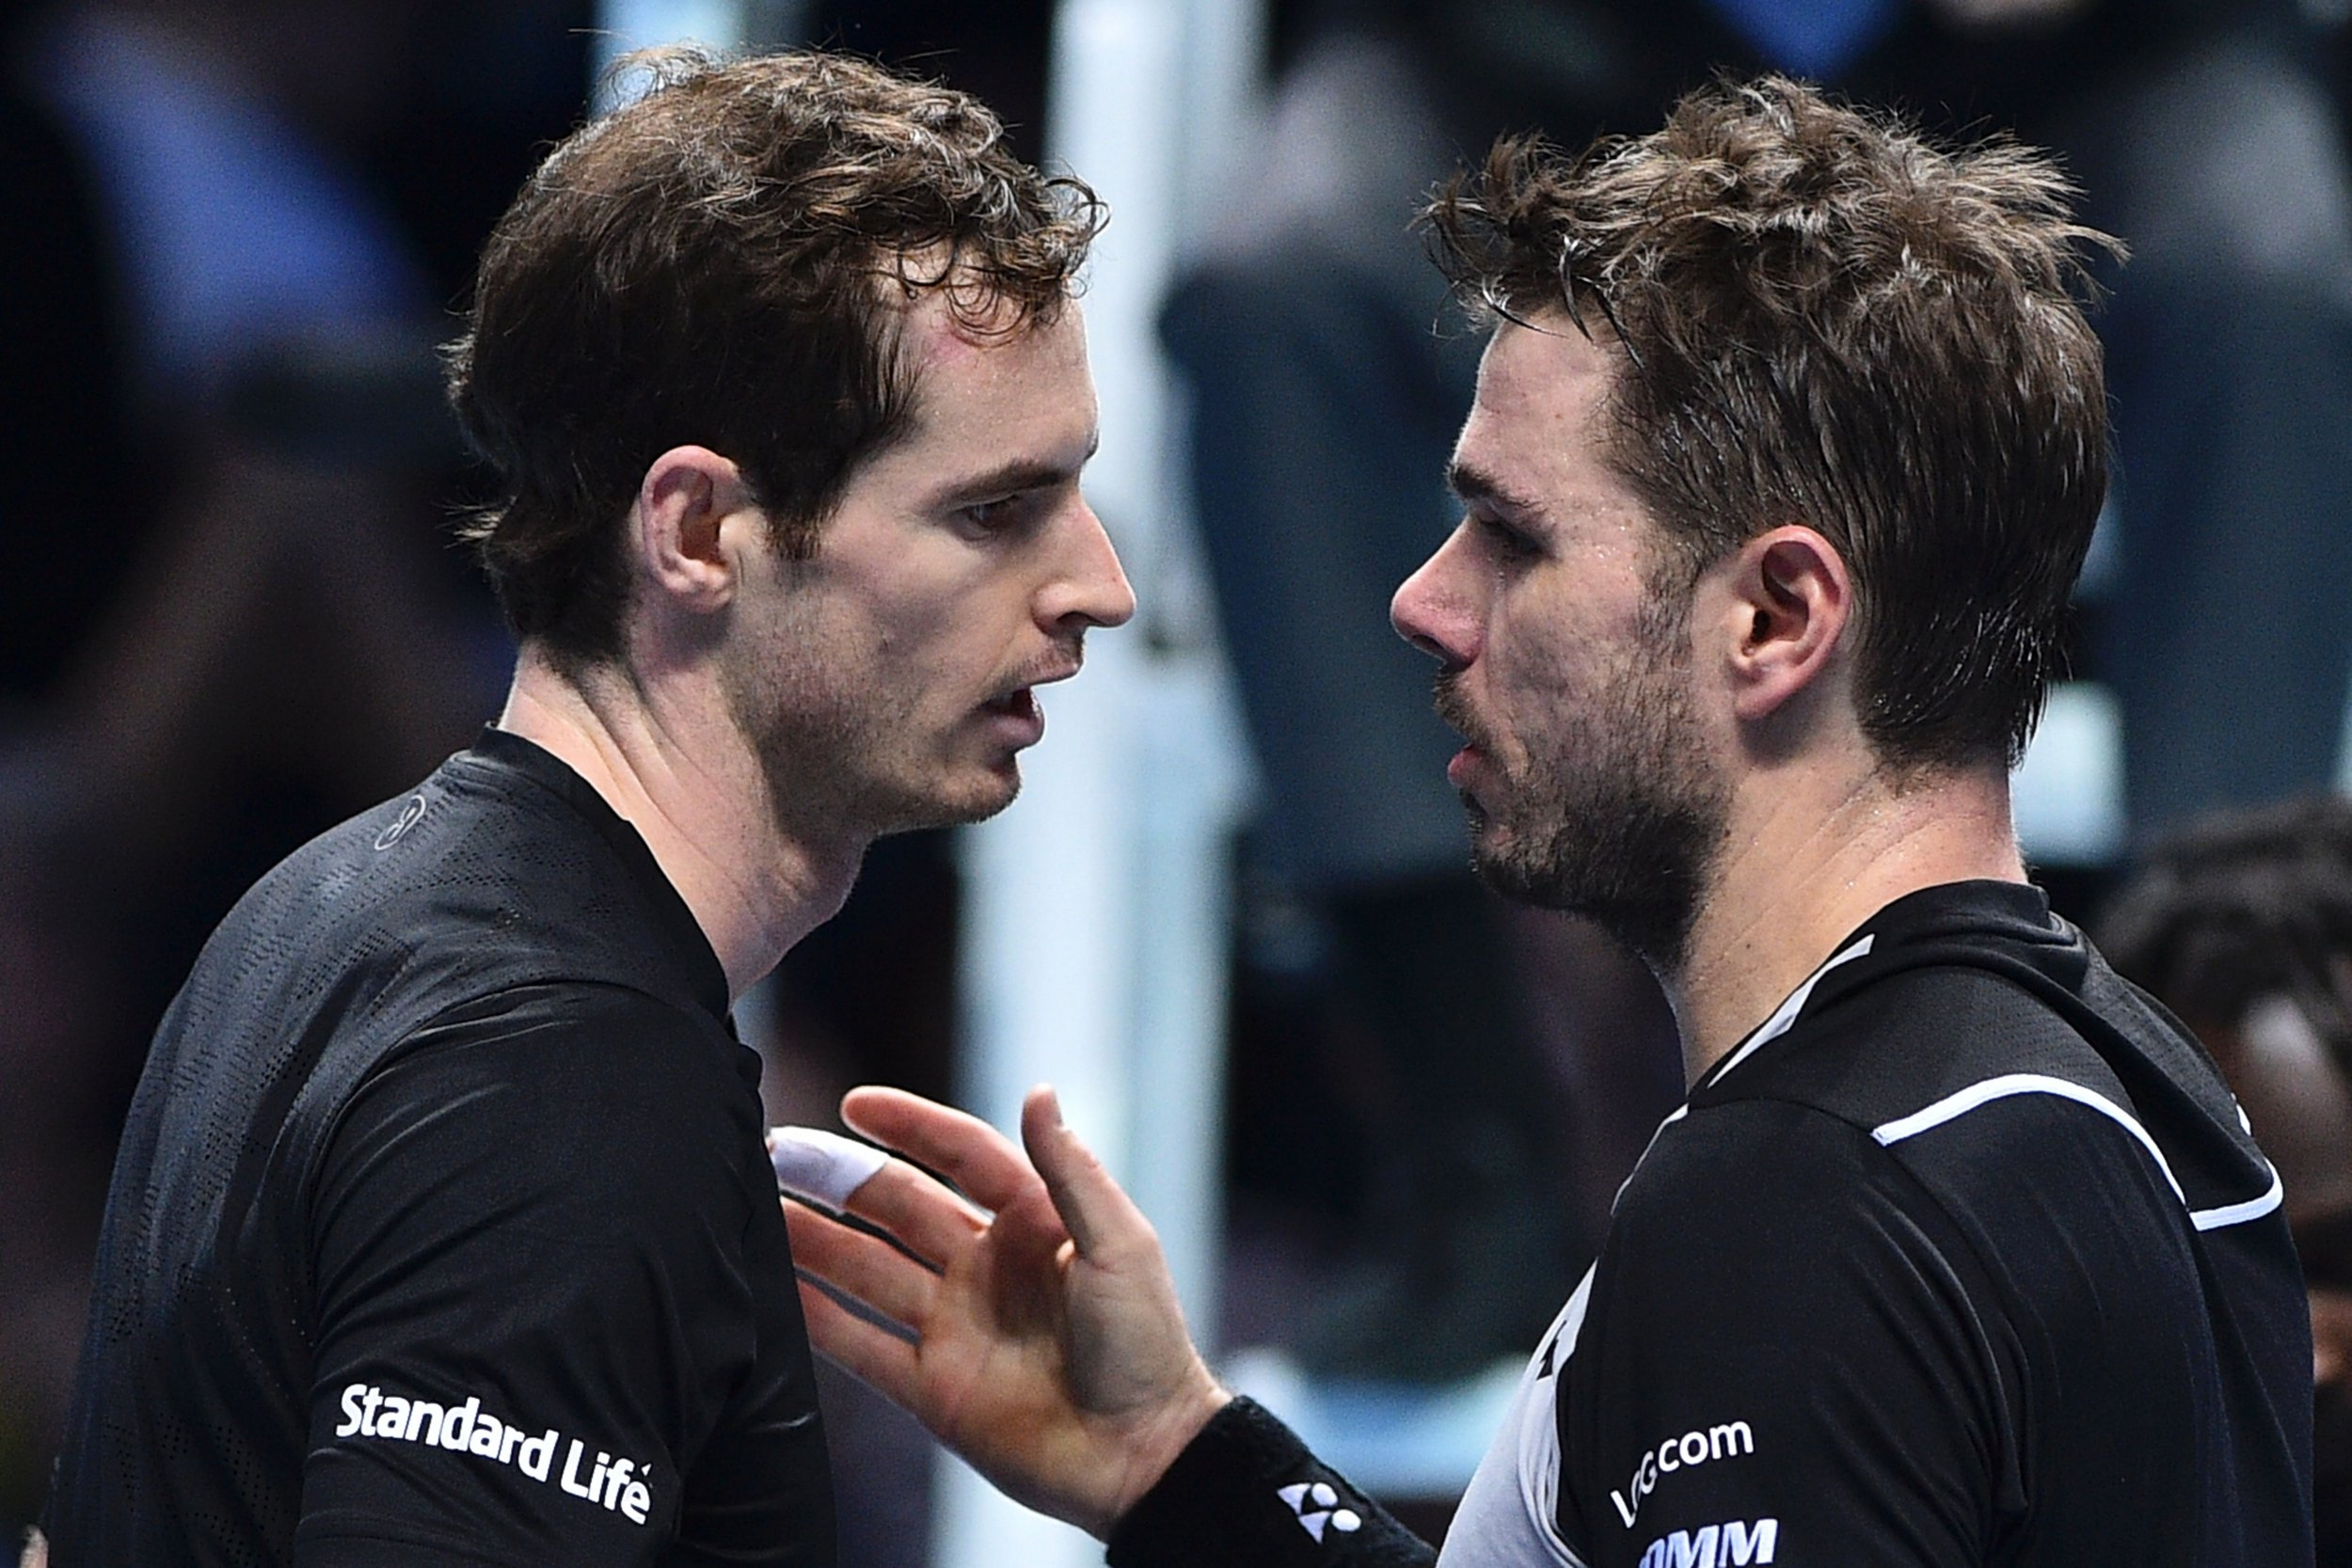 World number one Andy Murray, left, with rival Stan Wawrinka.